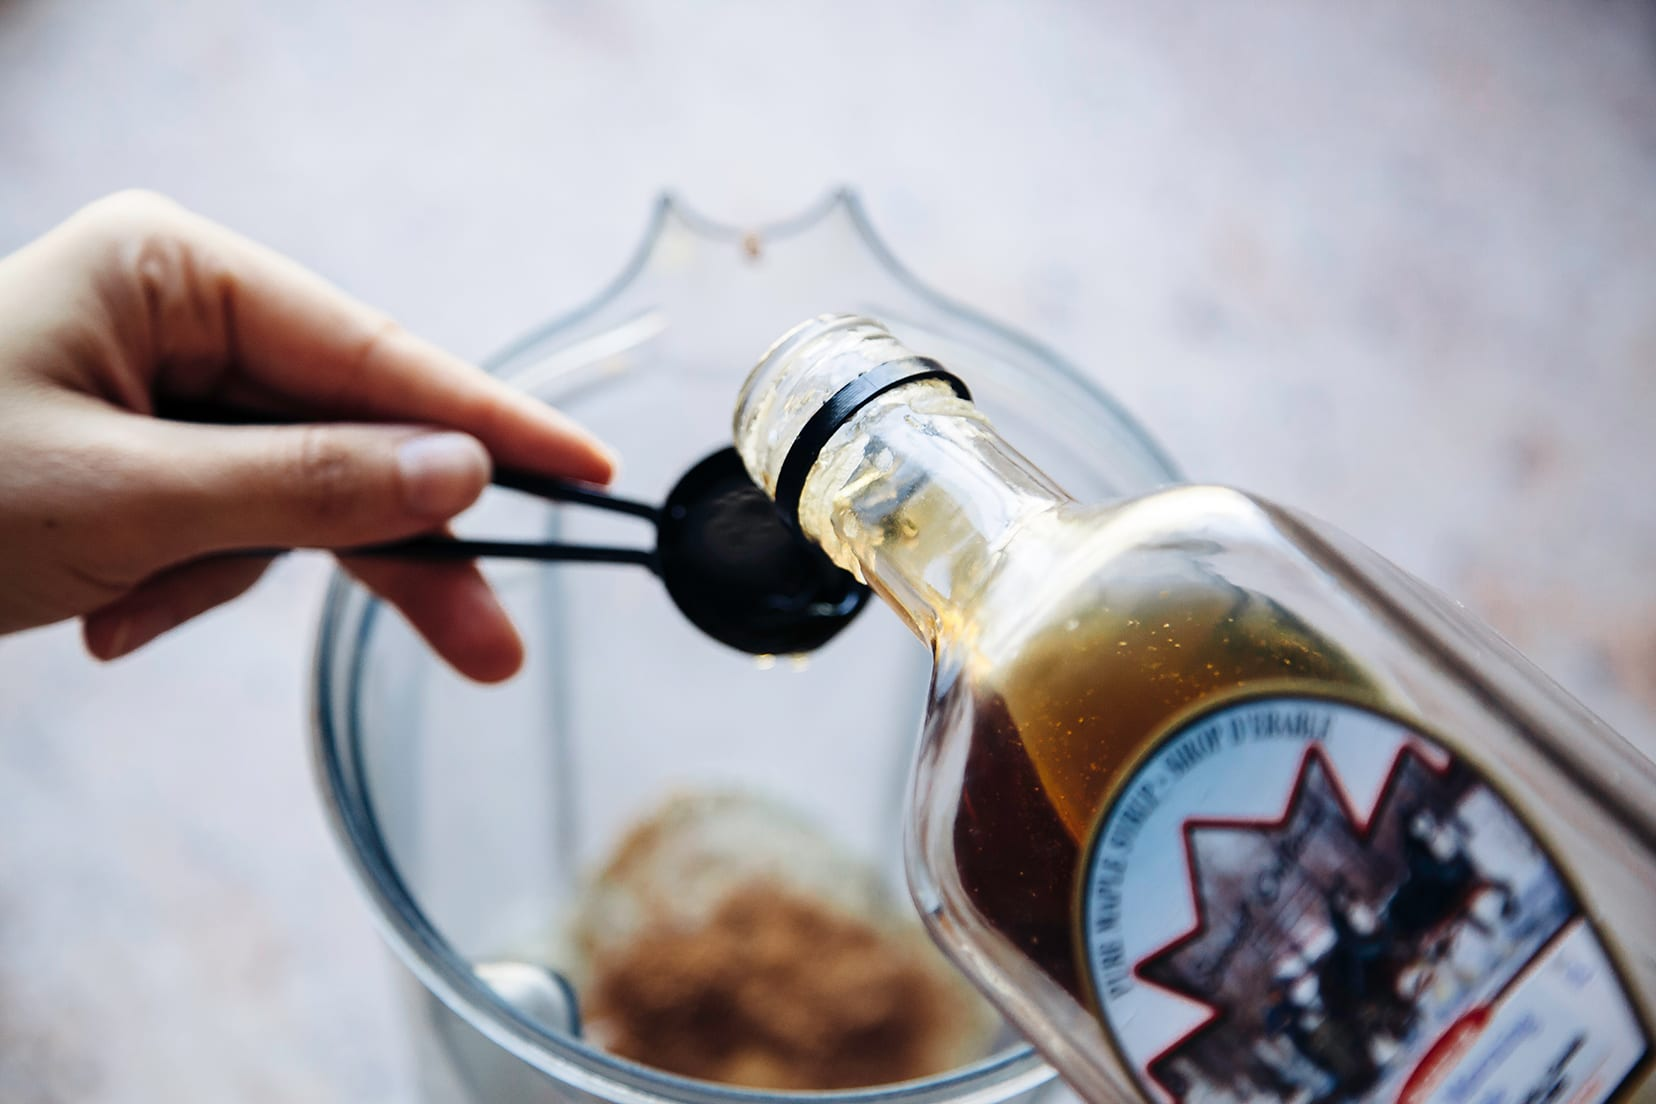 An up close shot of a hand pouring maple syrup into a measuring spoon.